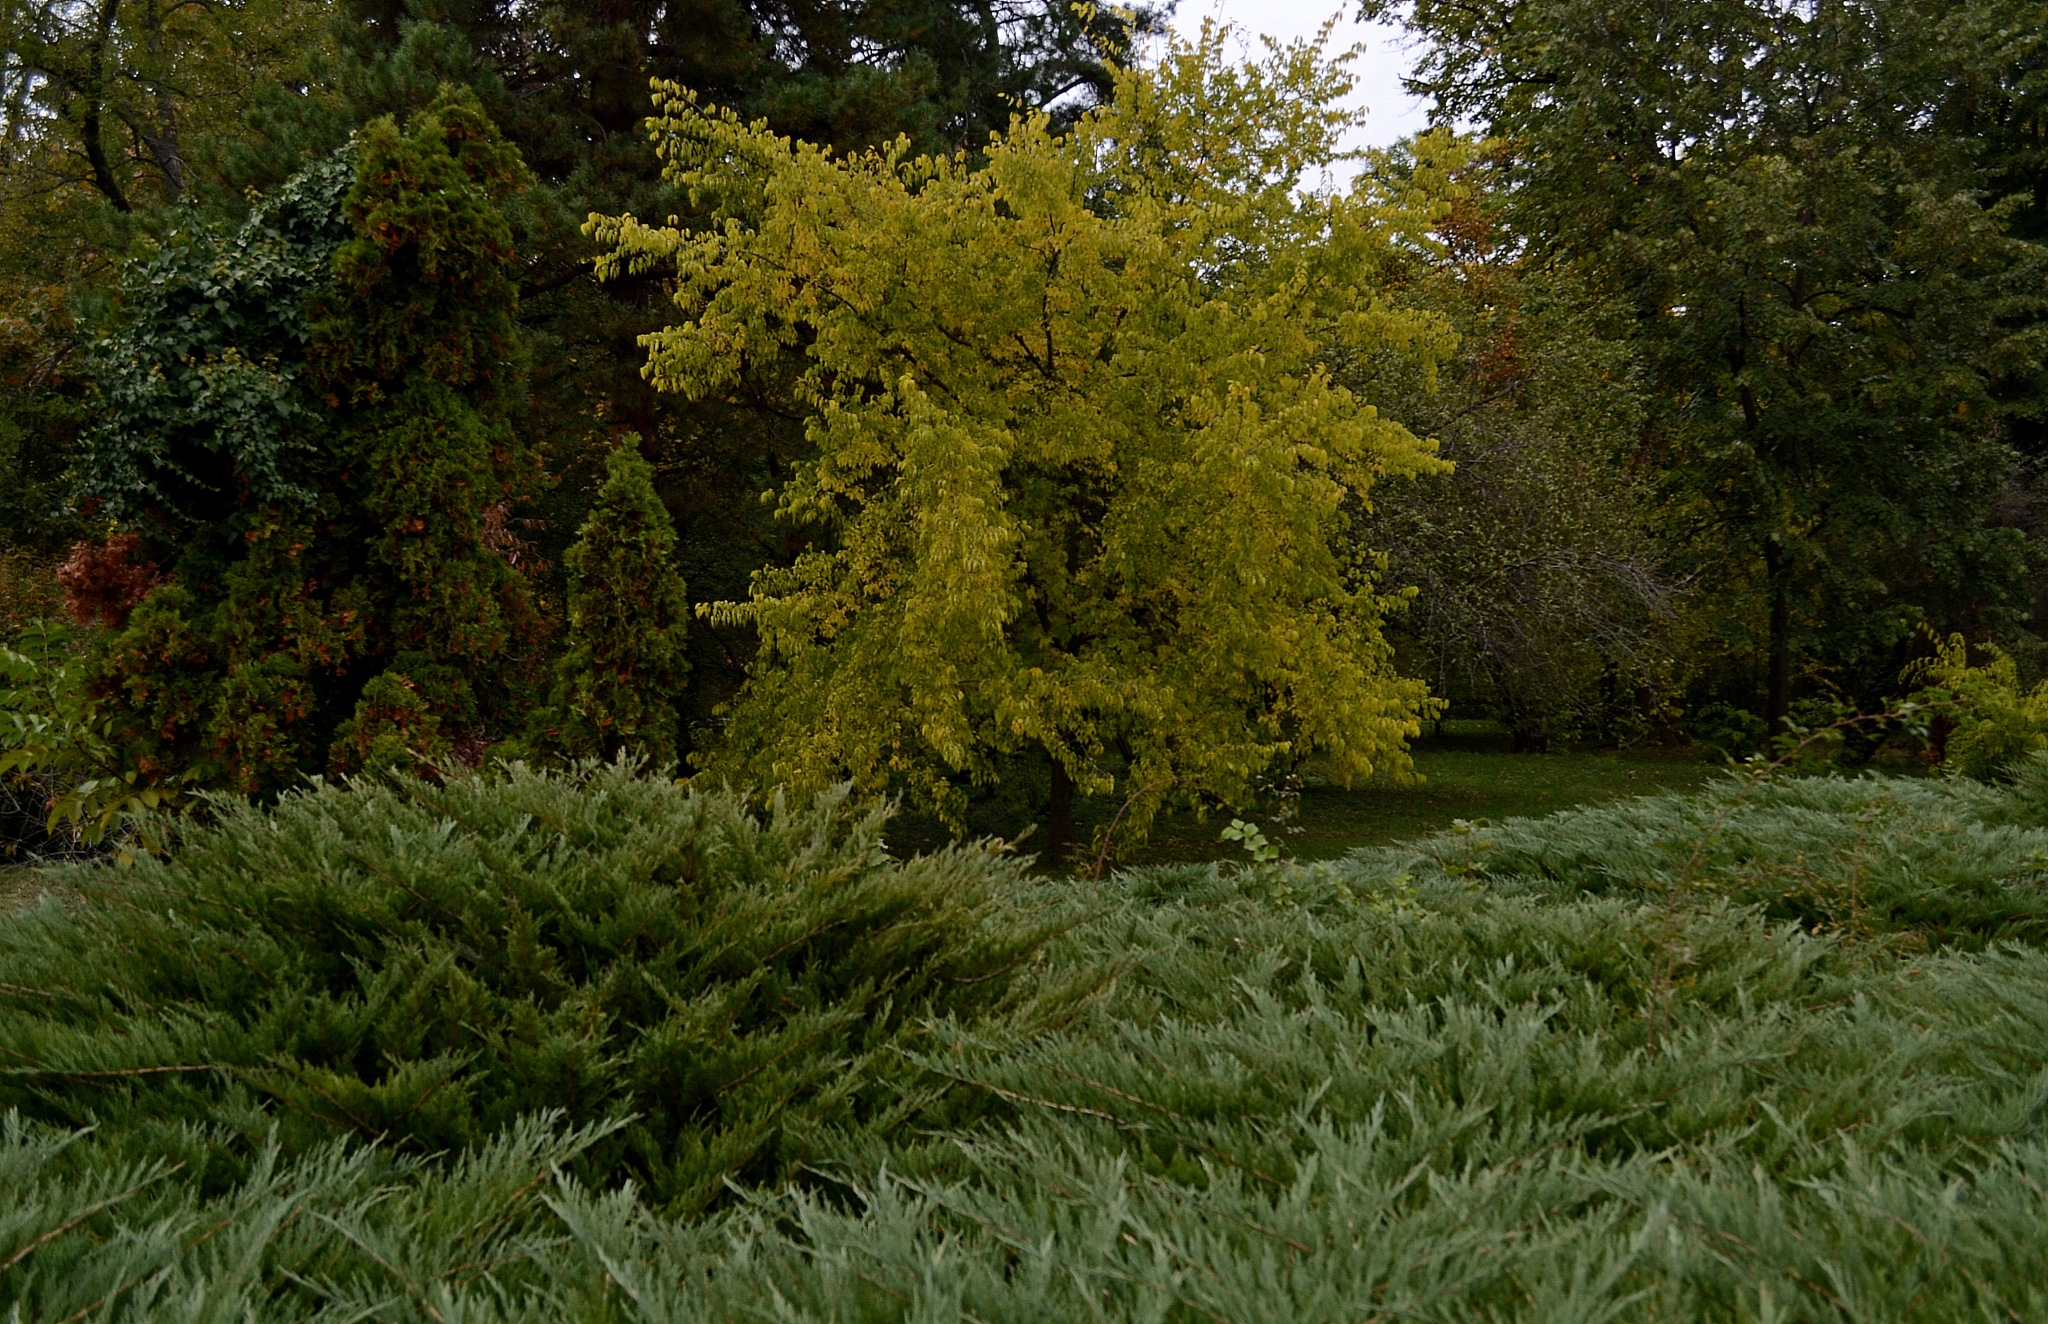 Autumn in park by staicugheorghe3